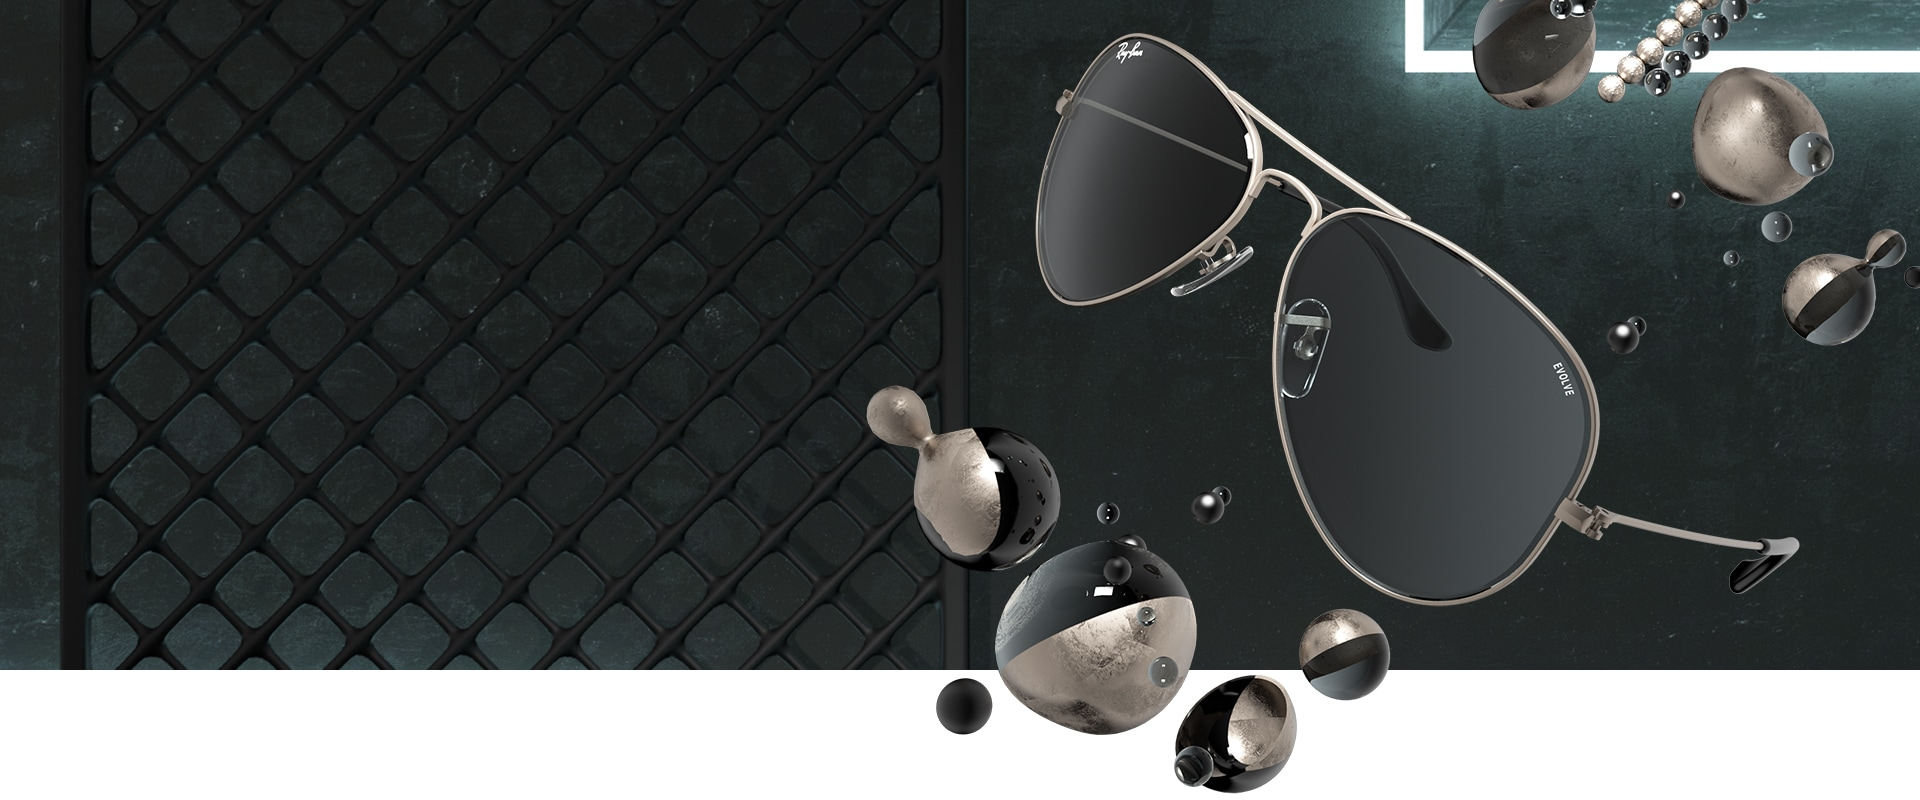 Ray Ban Official Site Usa Katalig Baji Kaptem Amerika The Best Gifts Are Ones You Create